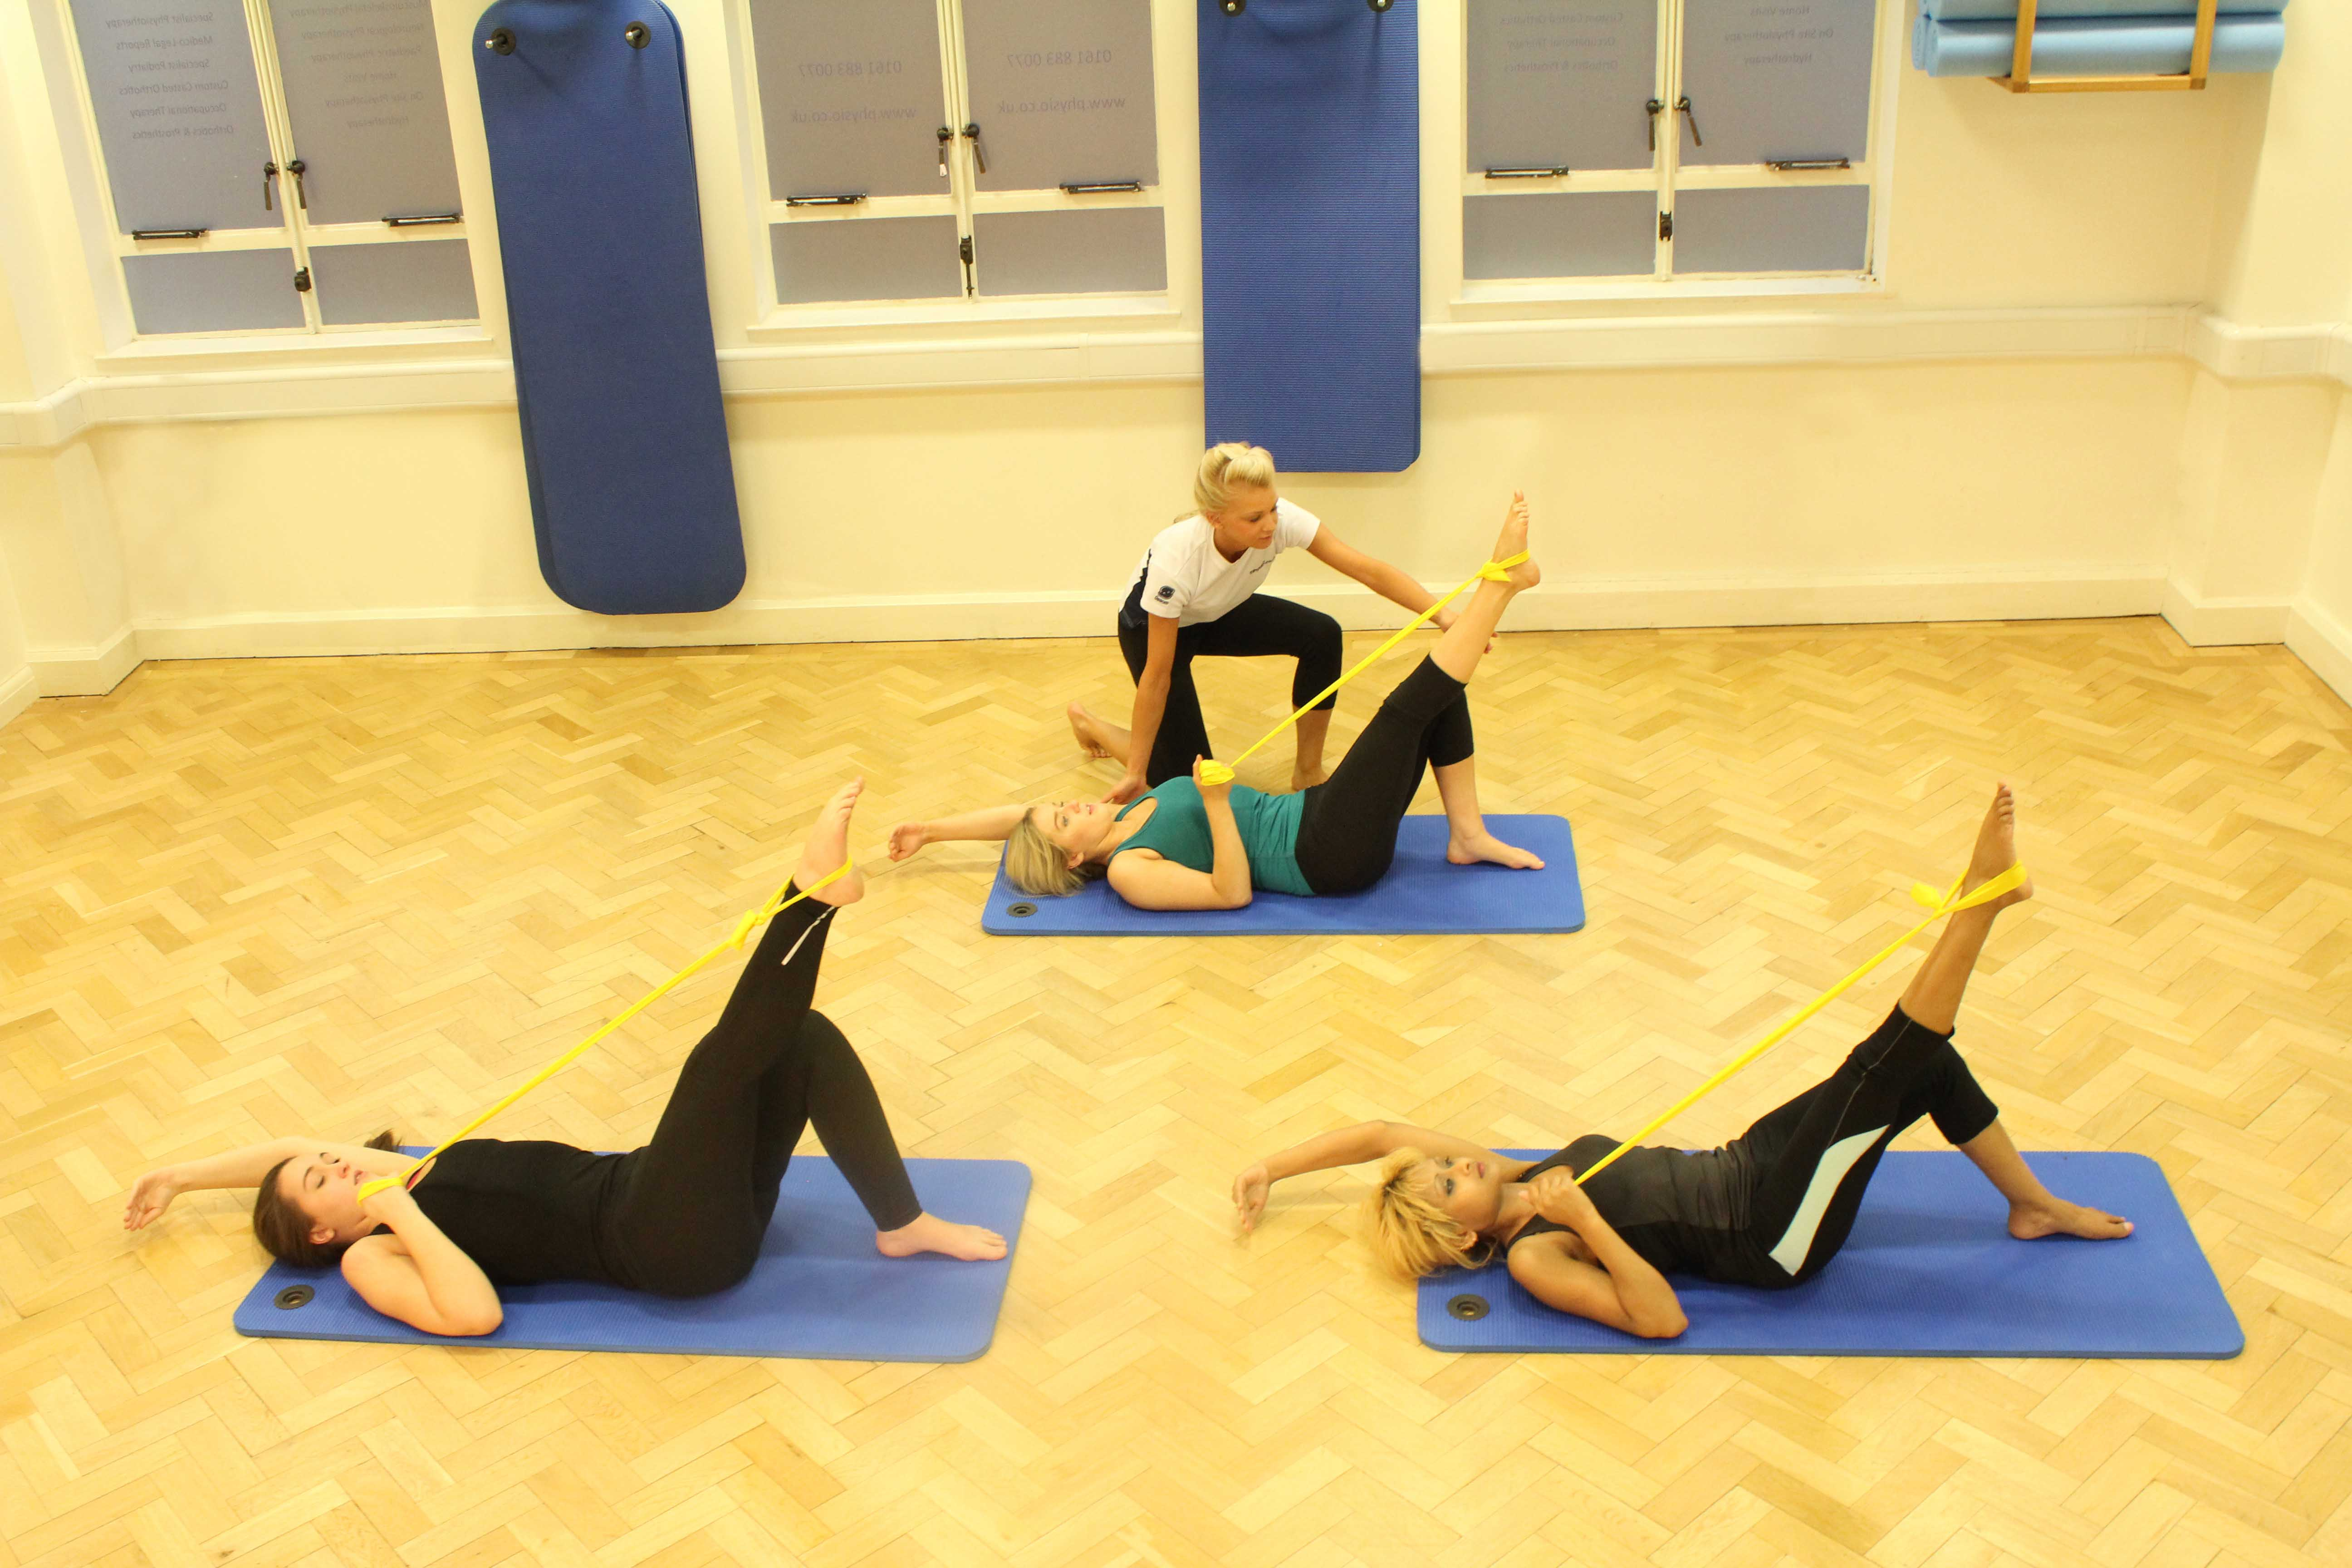 Physiotherapist led pilates class using resistance bands